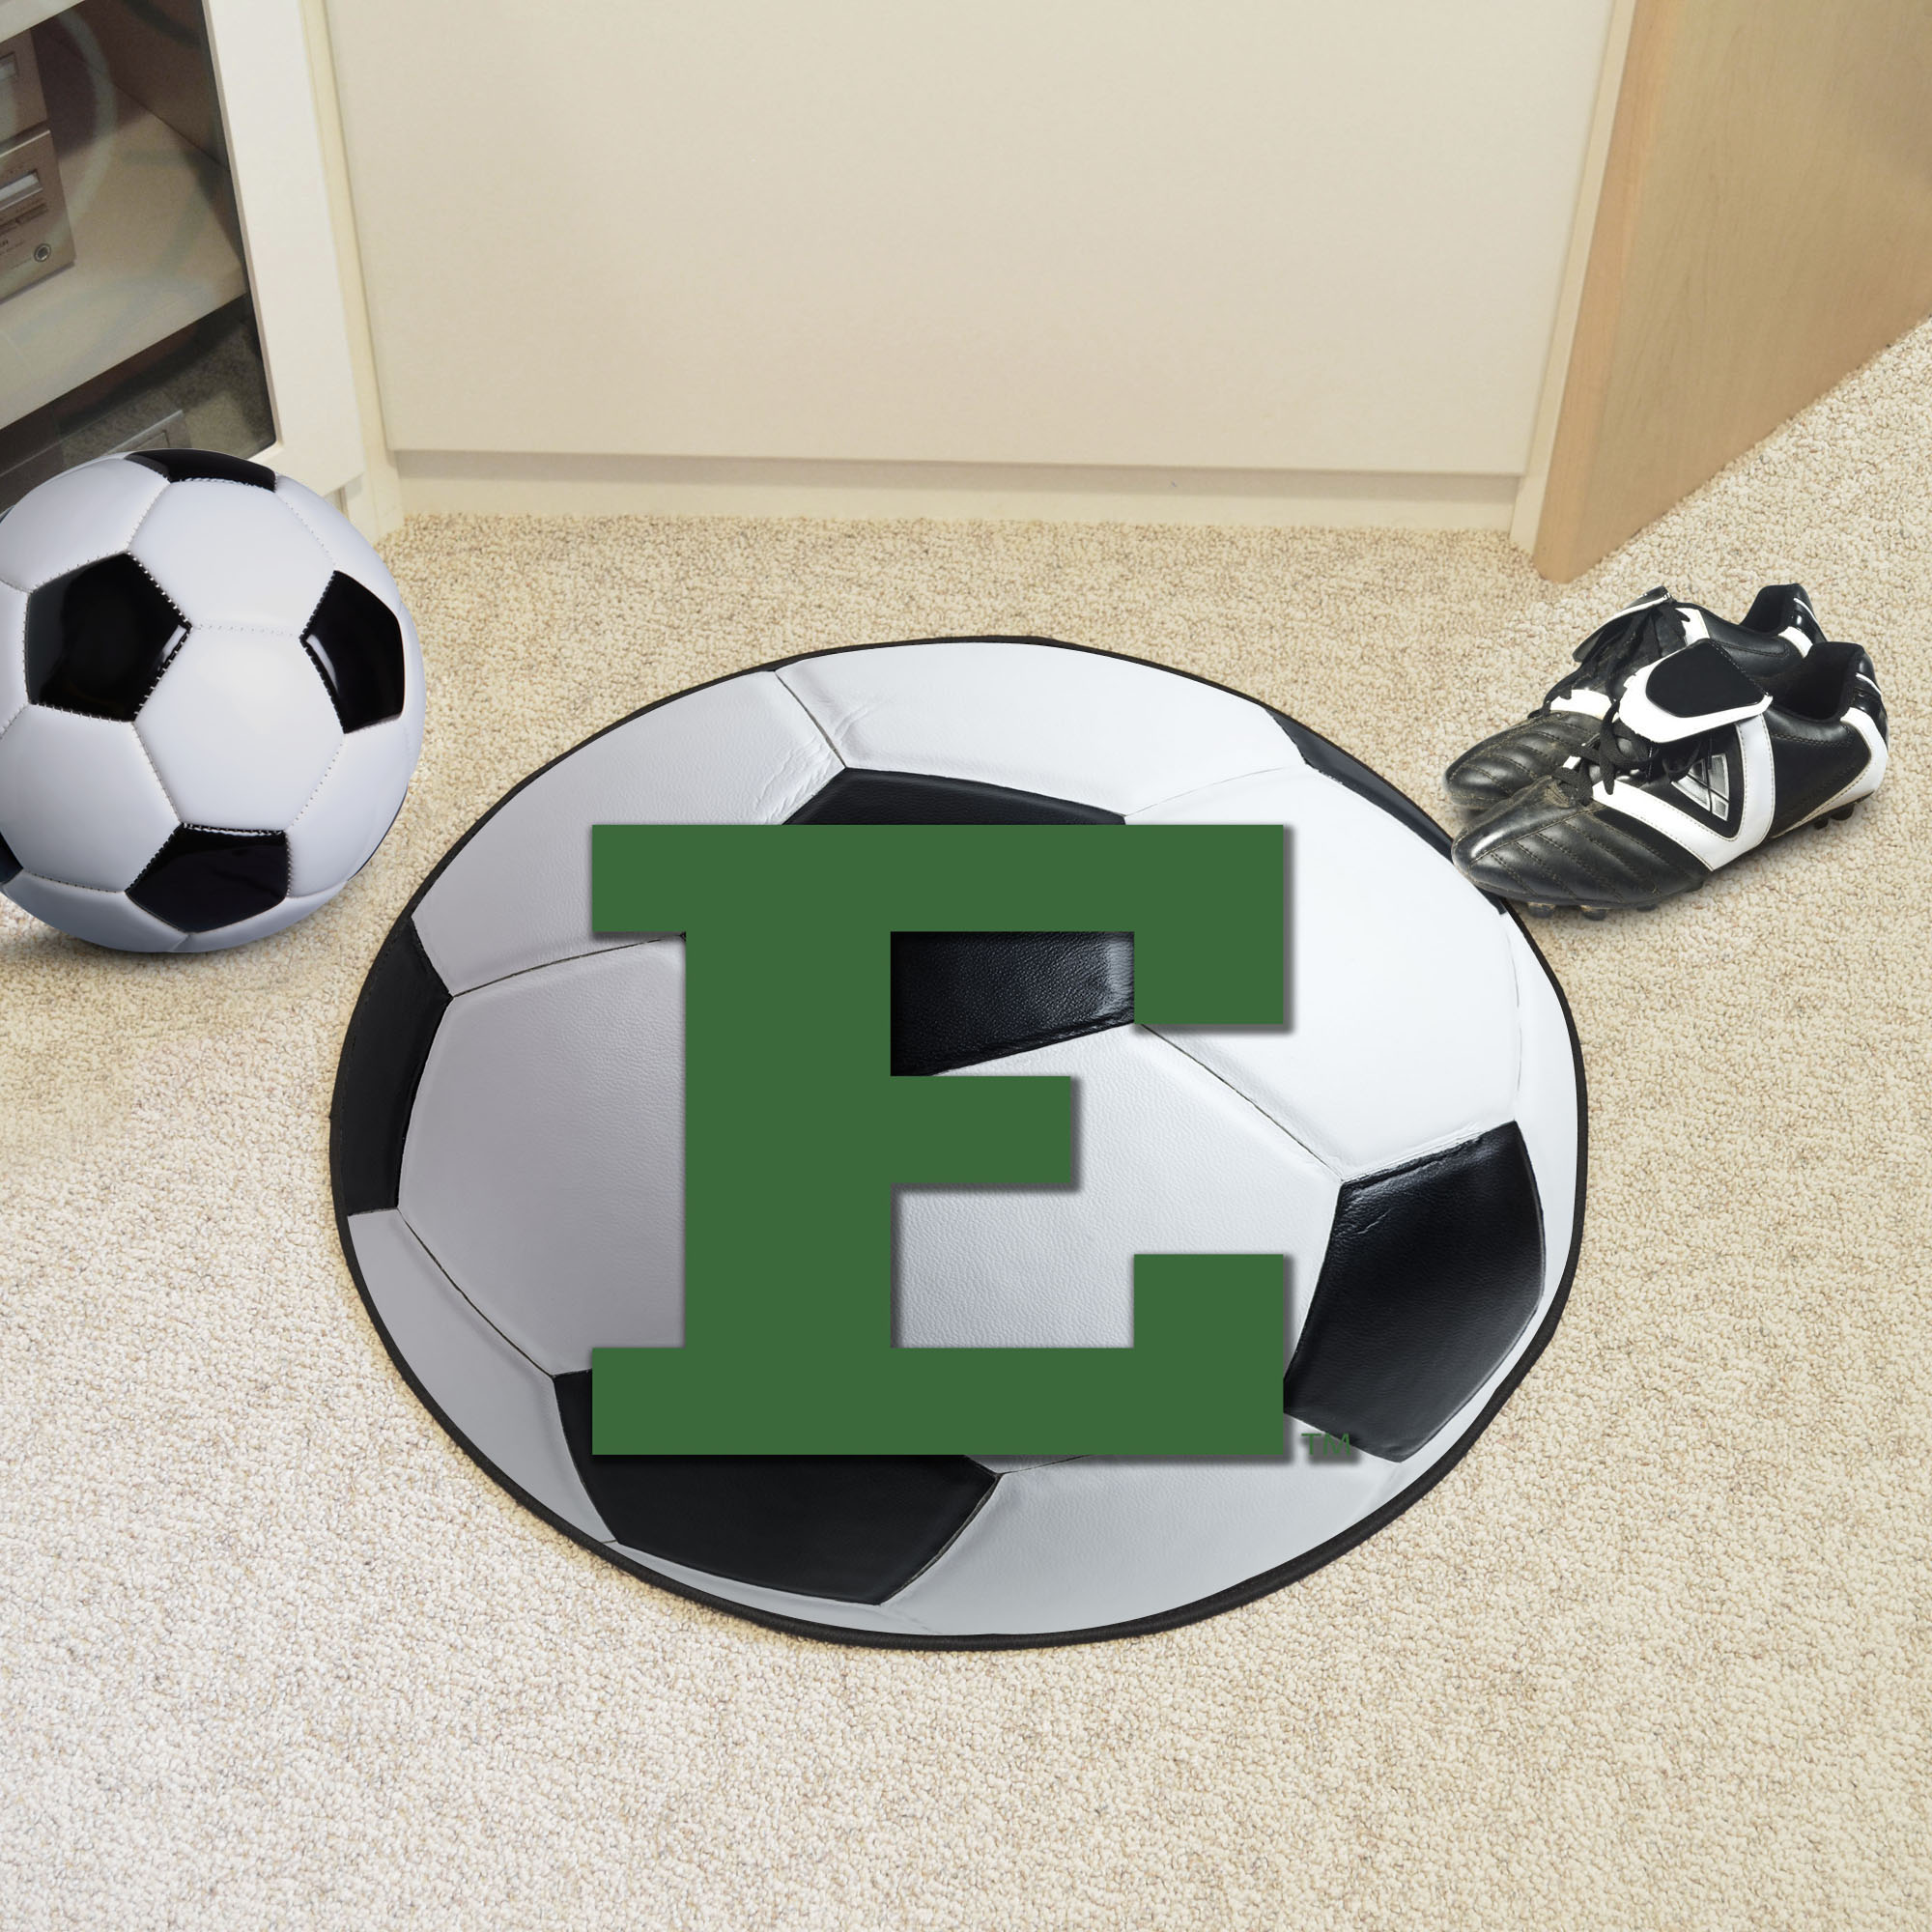 Eastern Michigan University Ball Shaped Area Rugs (Ball Shaped Area Rugs: Soccer Ball)